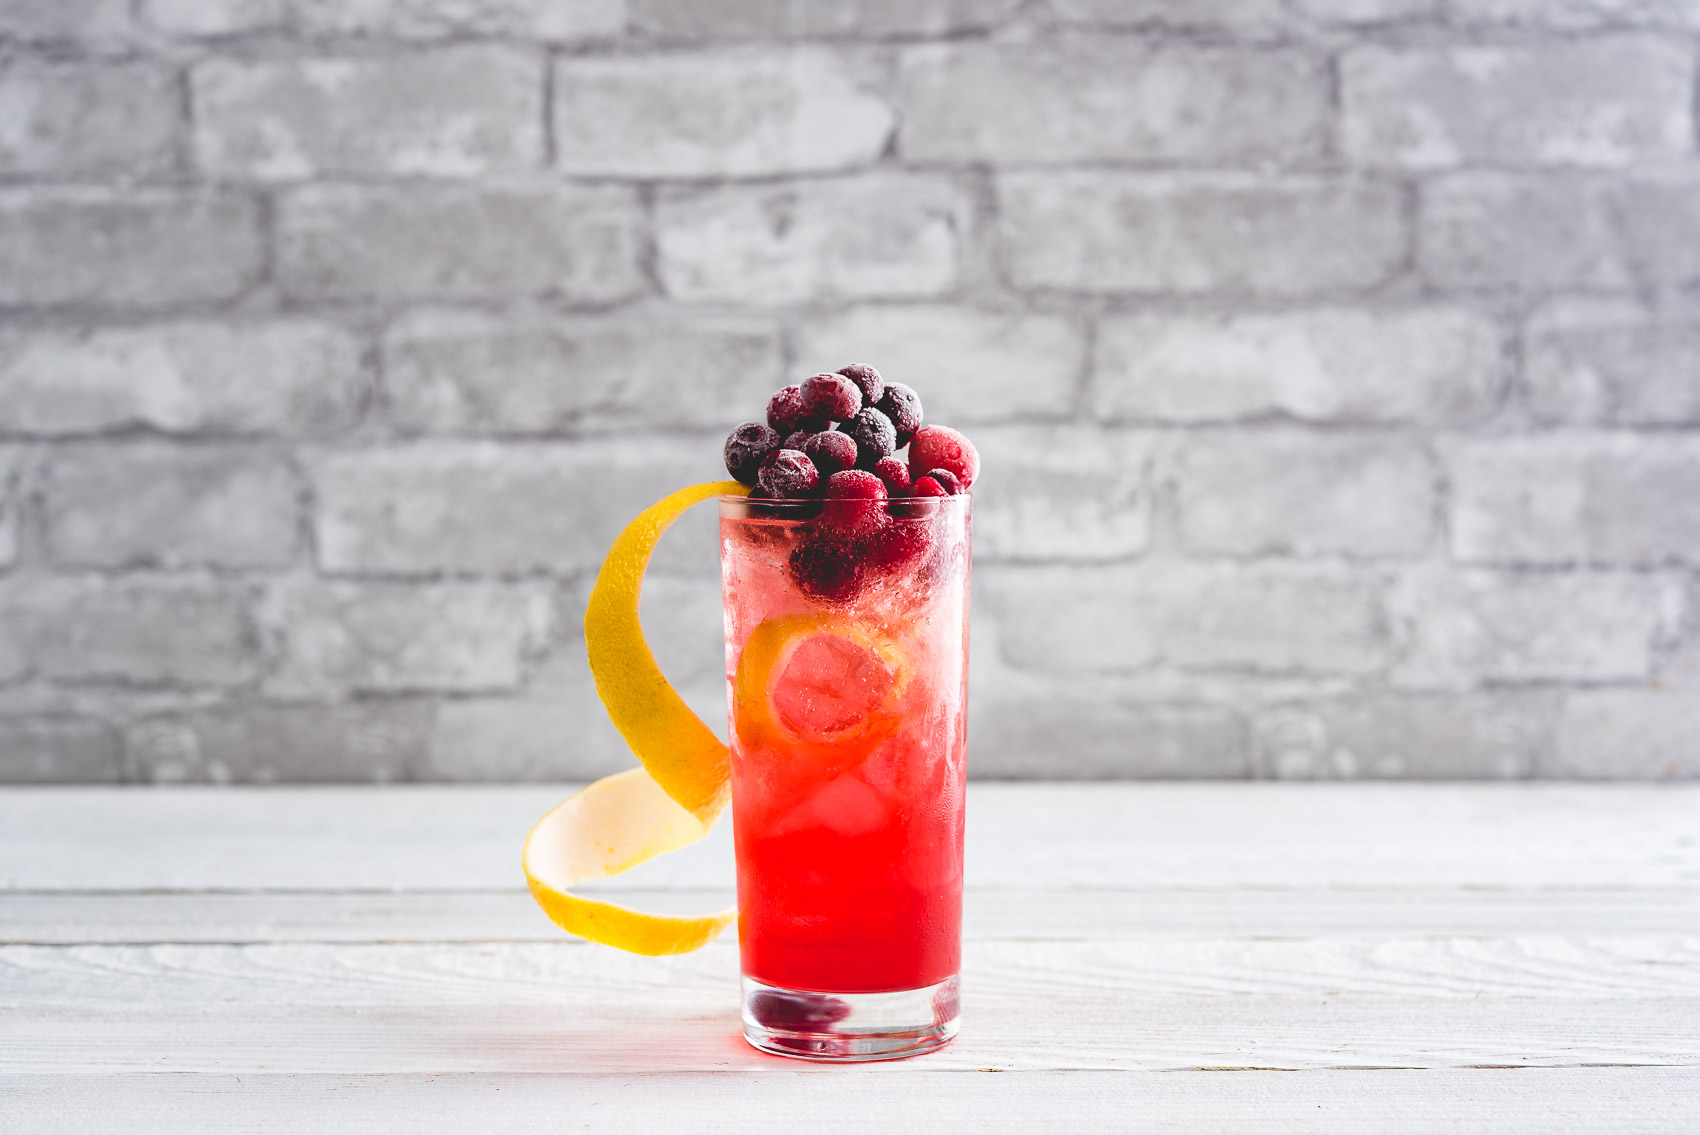 Tom Collins with Cranberry Cocktail from Nomageddon - The Cranberry Collins is a fall cocktail based on the Classic Tom Collins. The perfect Thanksgiving Cocktail.